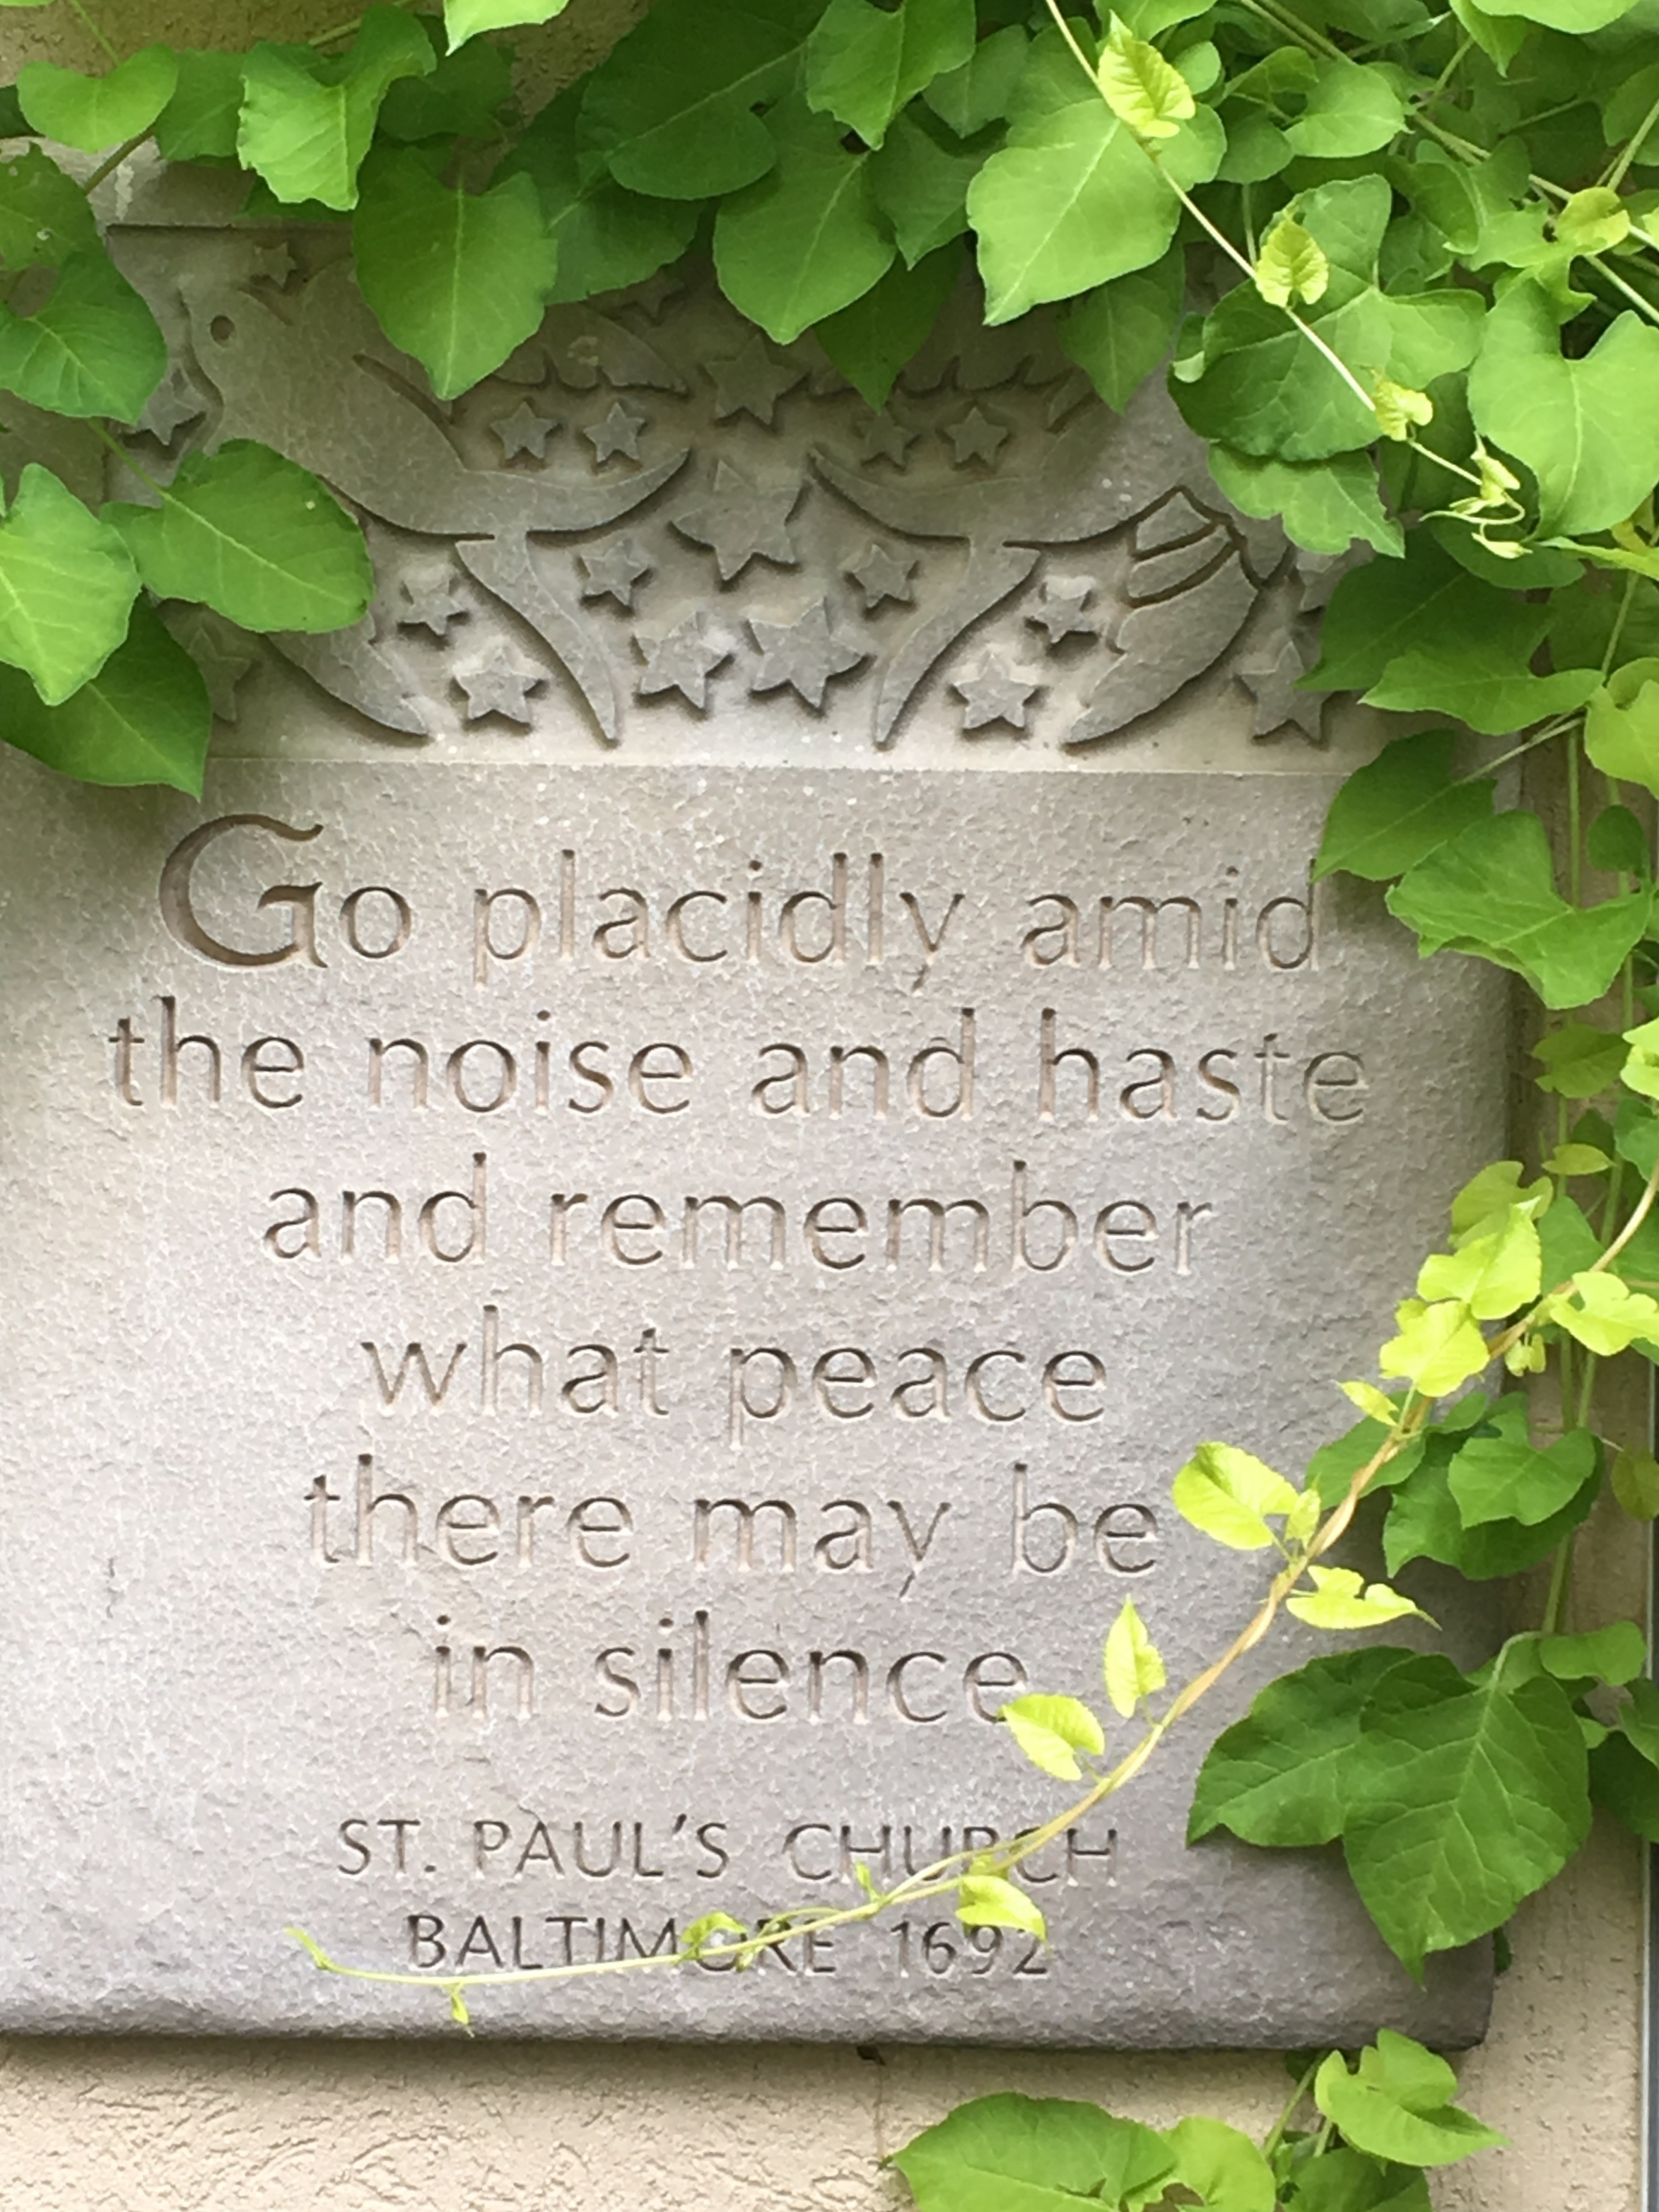 A favorite plaque tucked into a quiet corner.